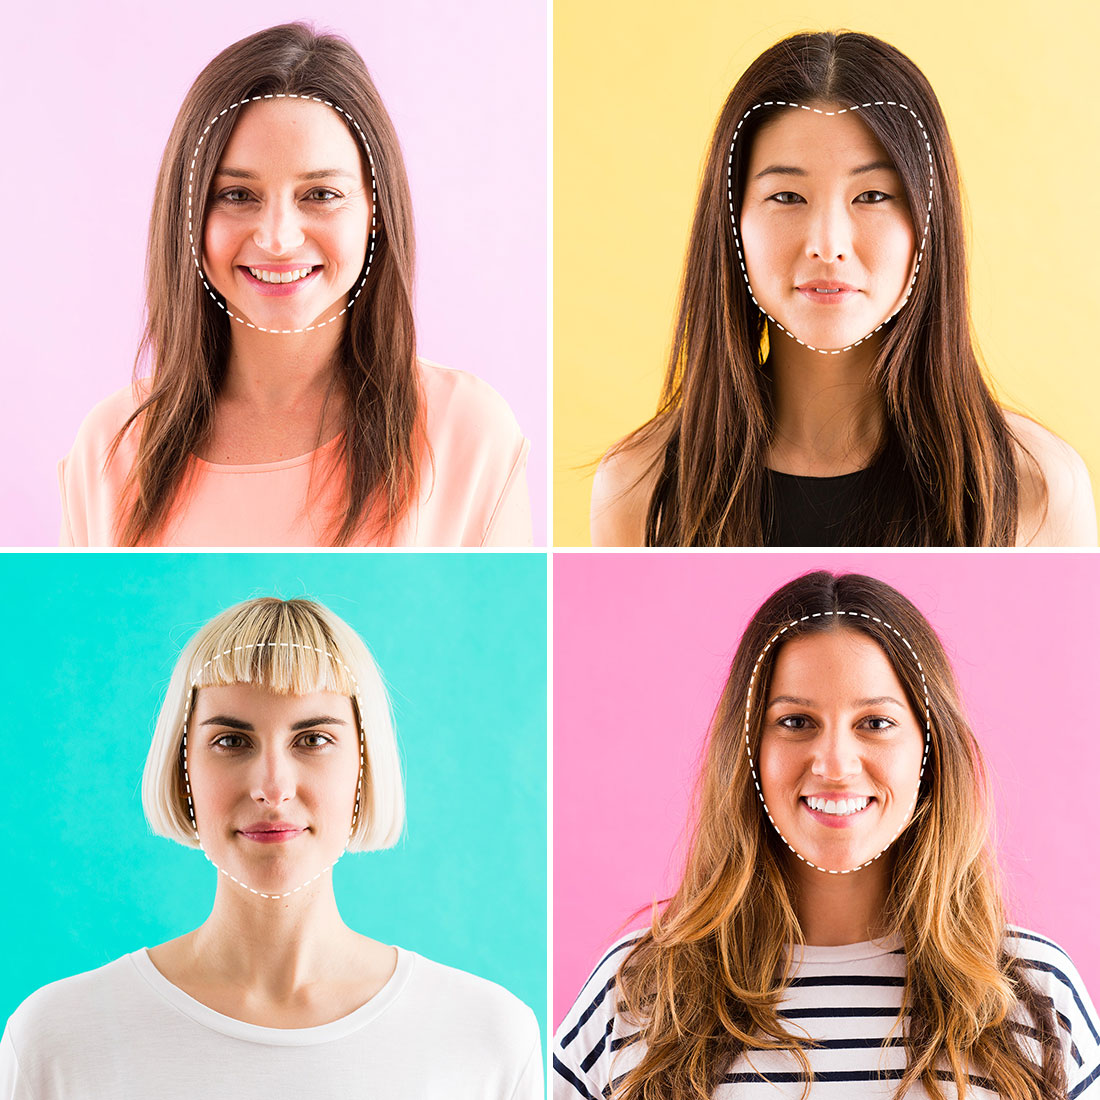 face shapes: finding your face shape